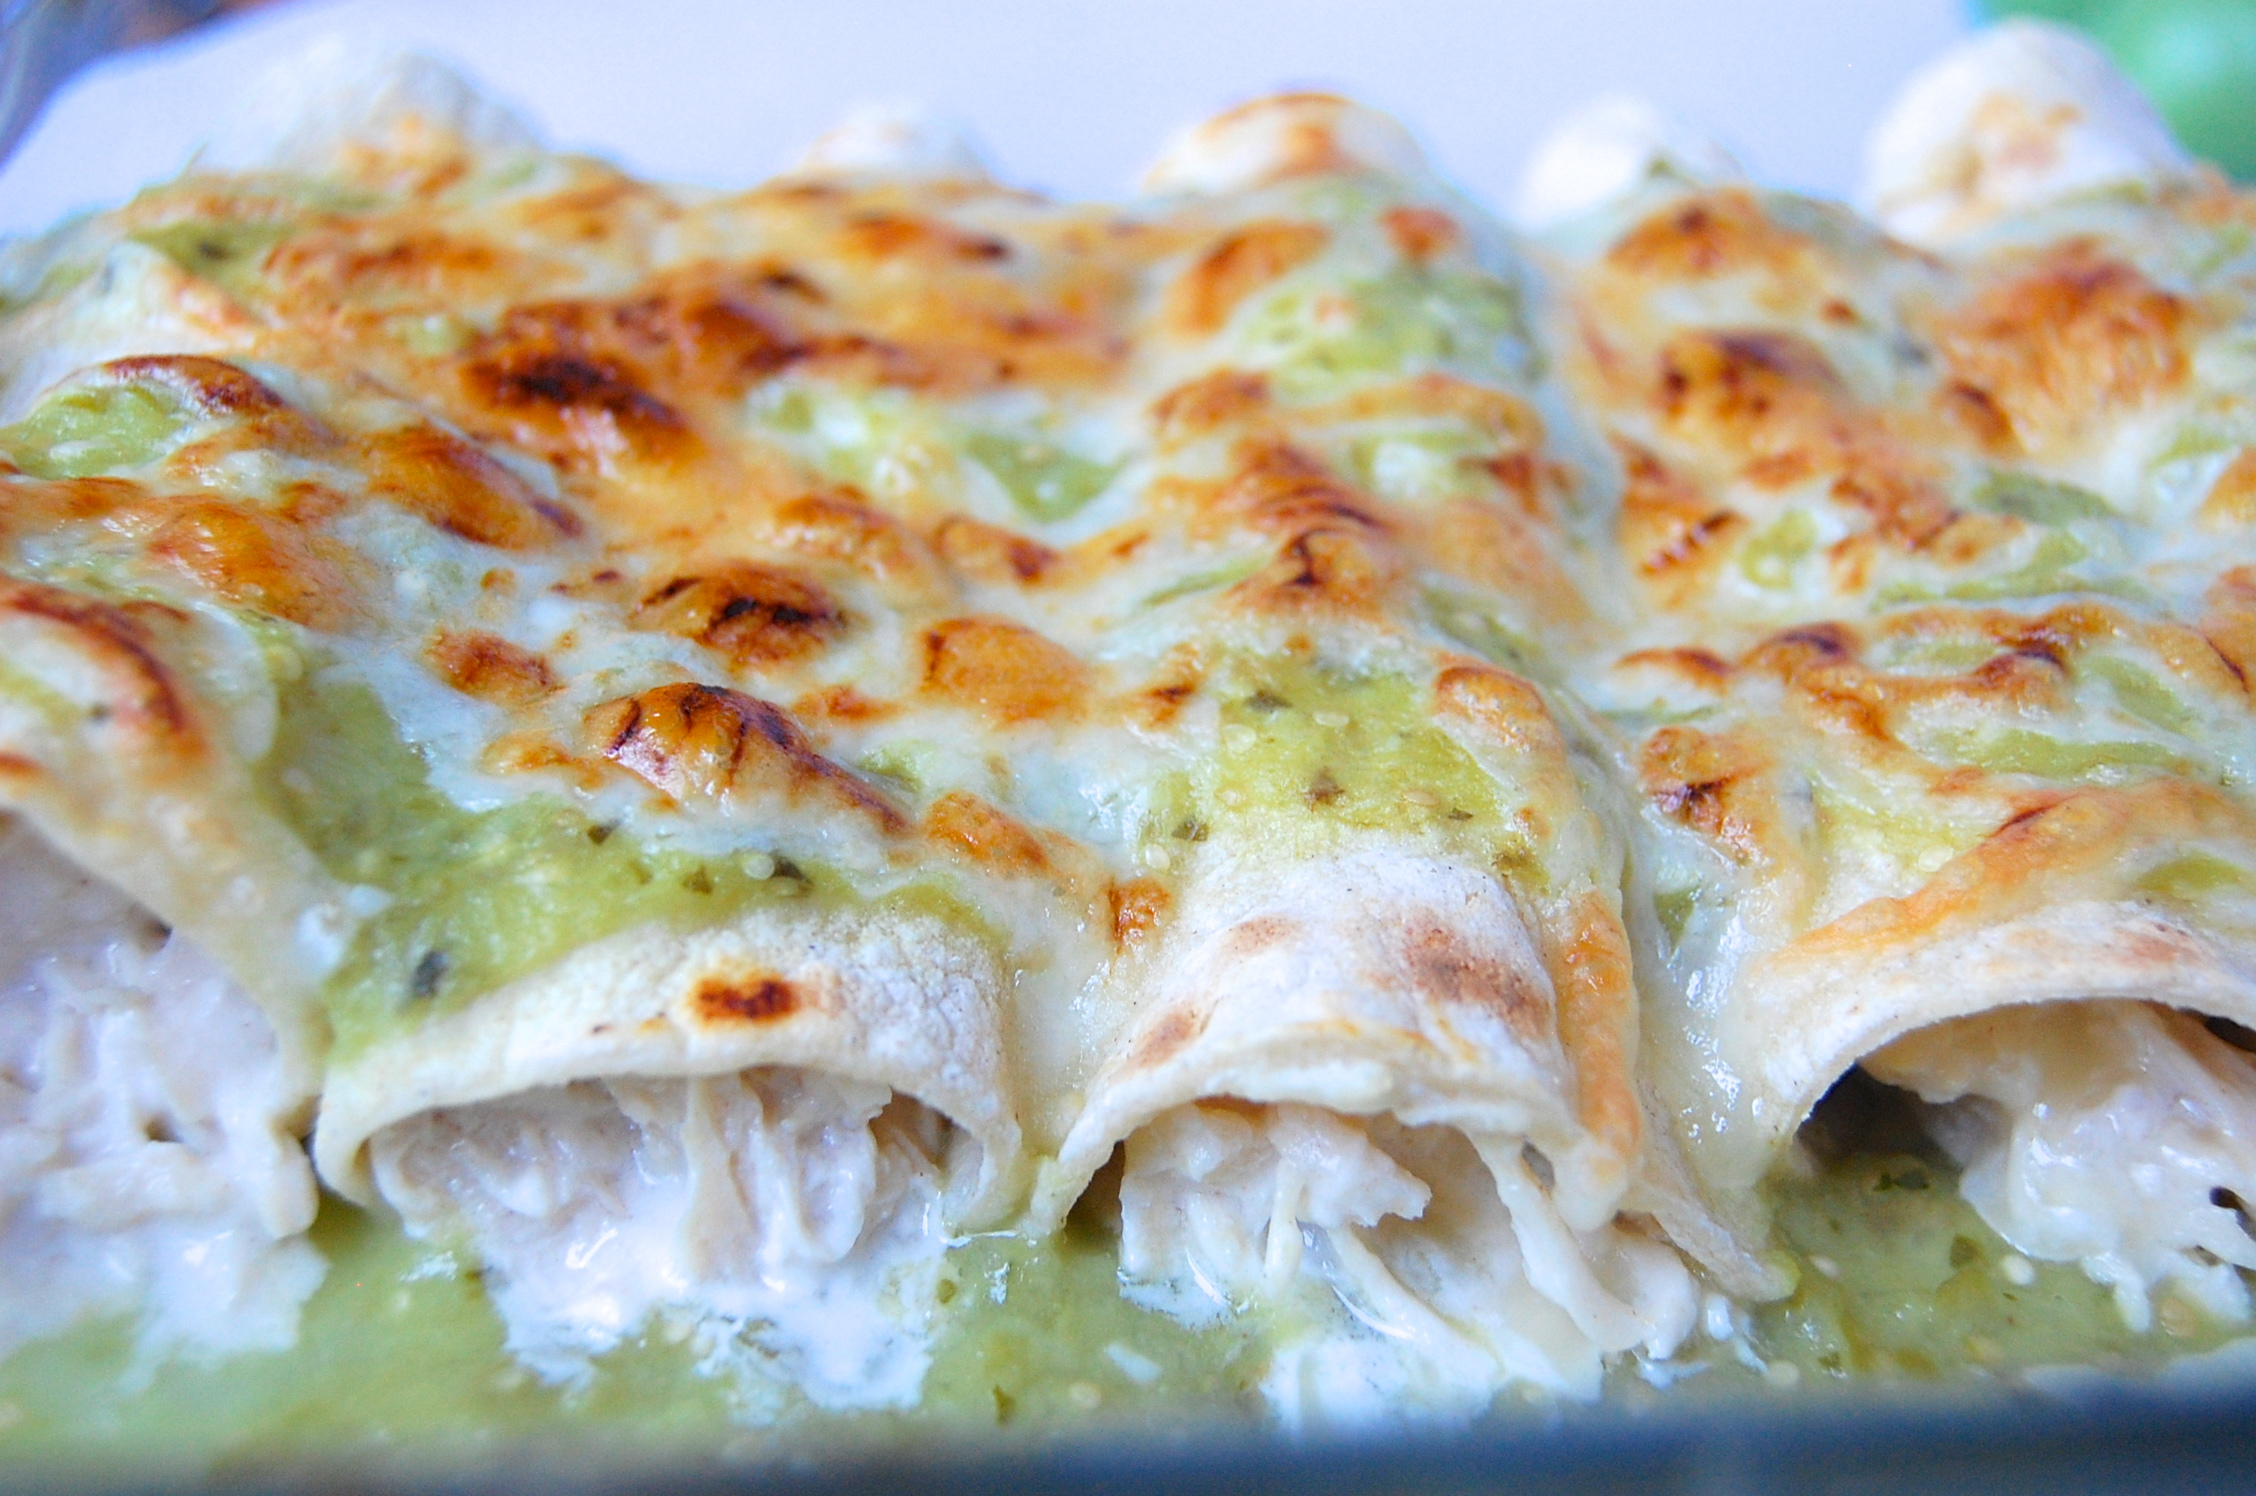 ... enchilada salsa verde and cheese chicken enchiladas salsa verde